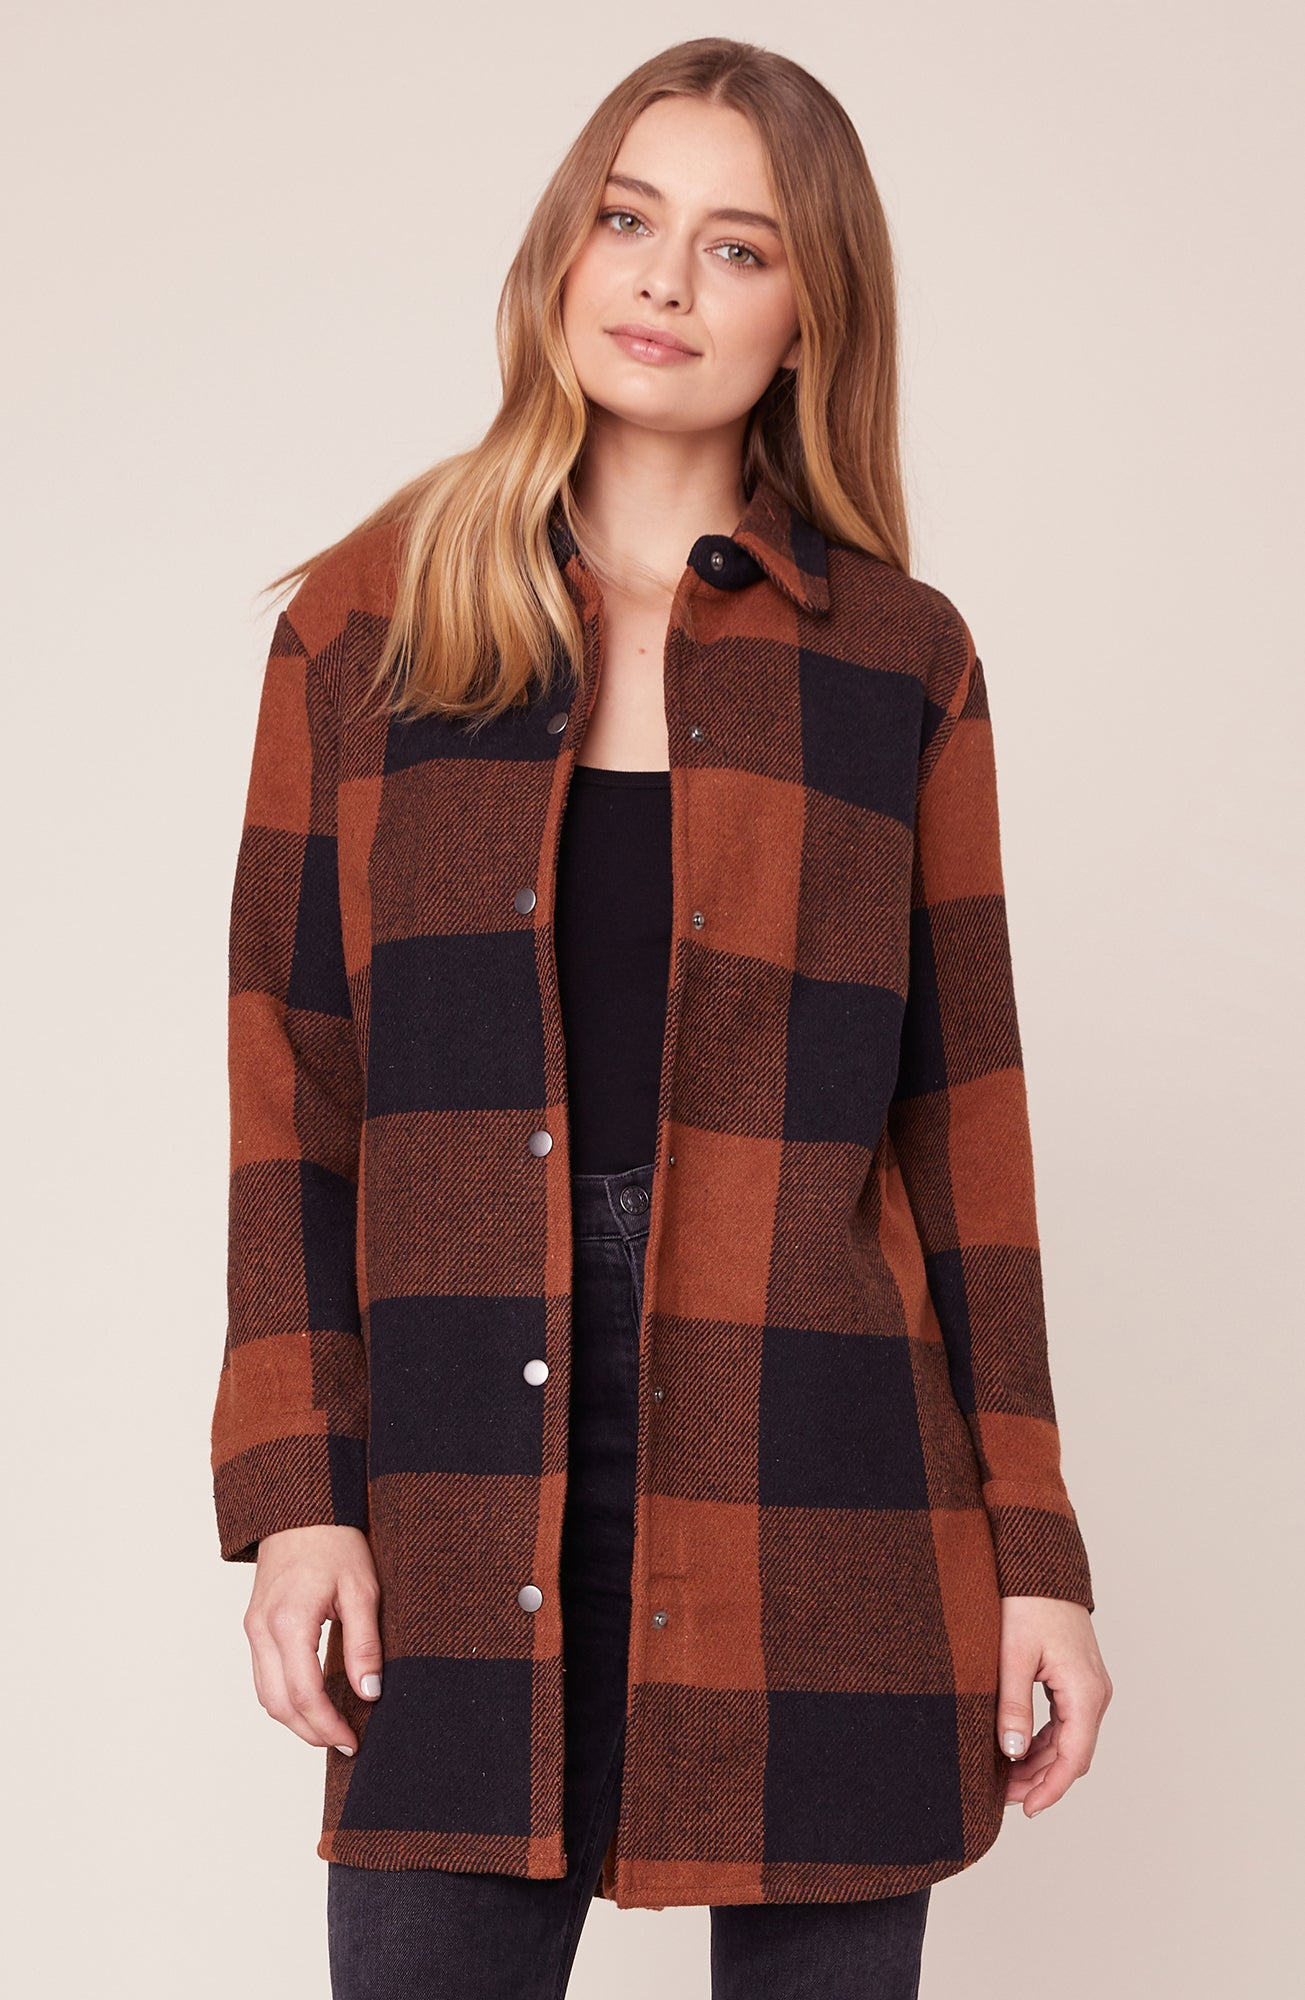 Trends Completer Plaid Jacket